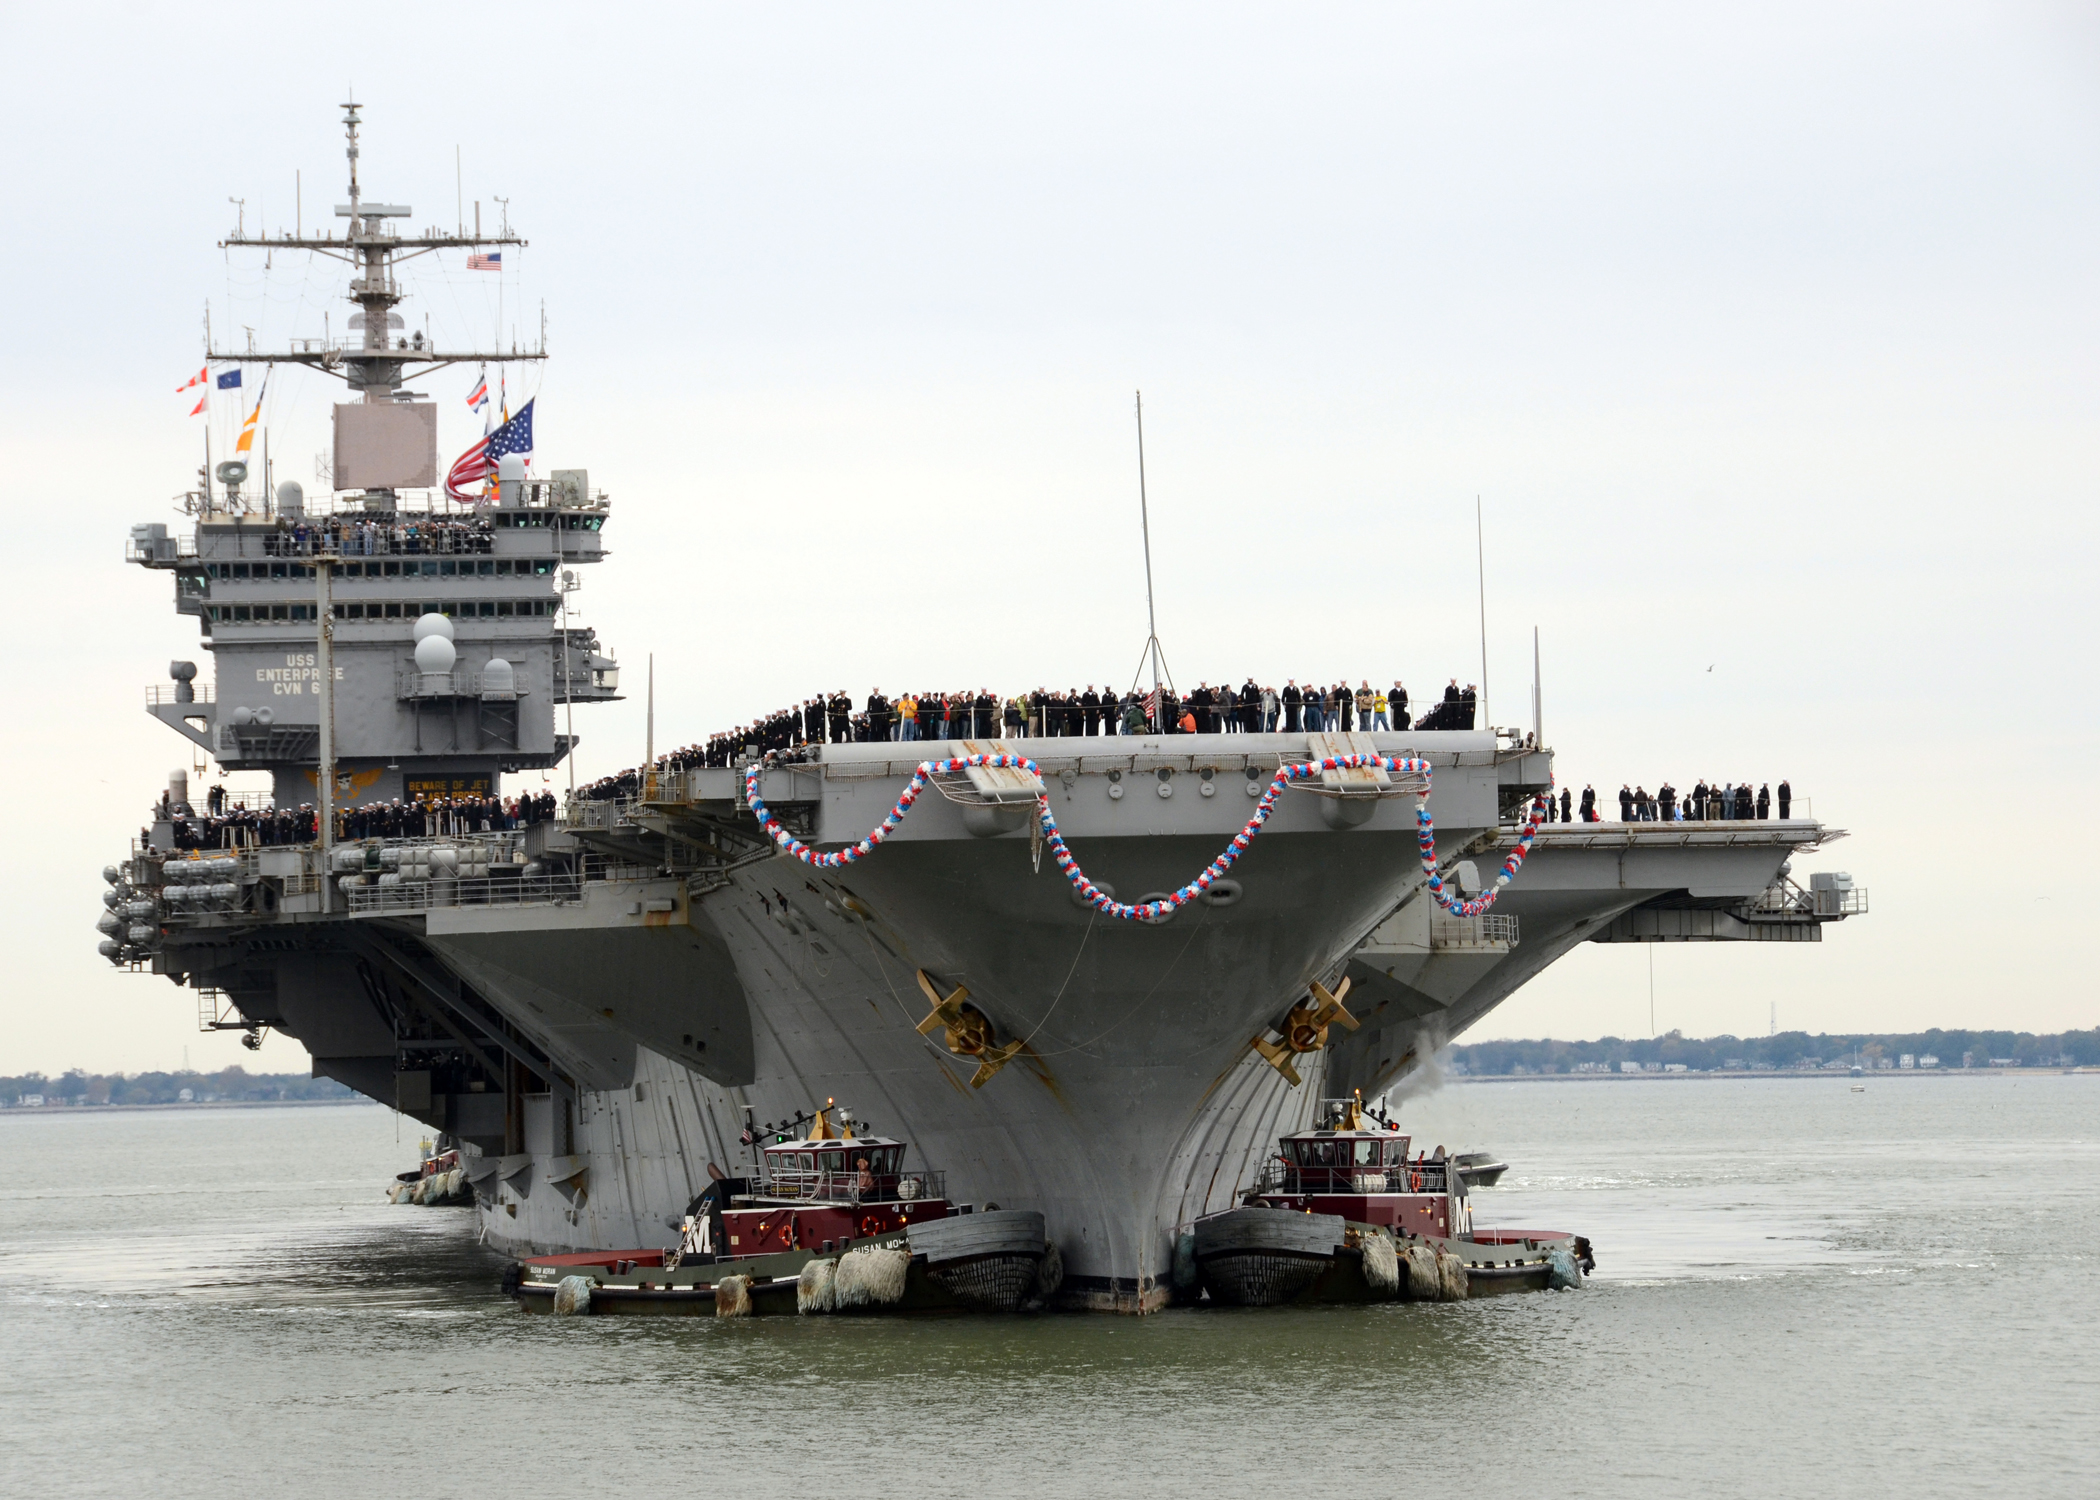 USS ENTERPRISE CVN-65 am 04.11.2012 in NorfolkBild: U.S. Navy